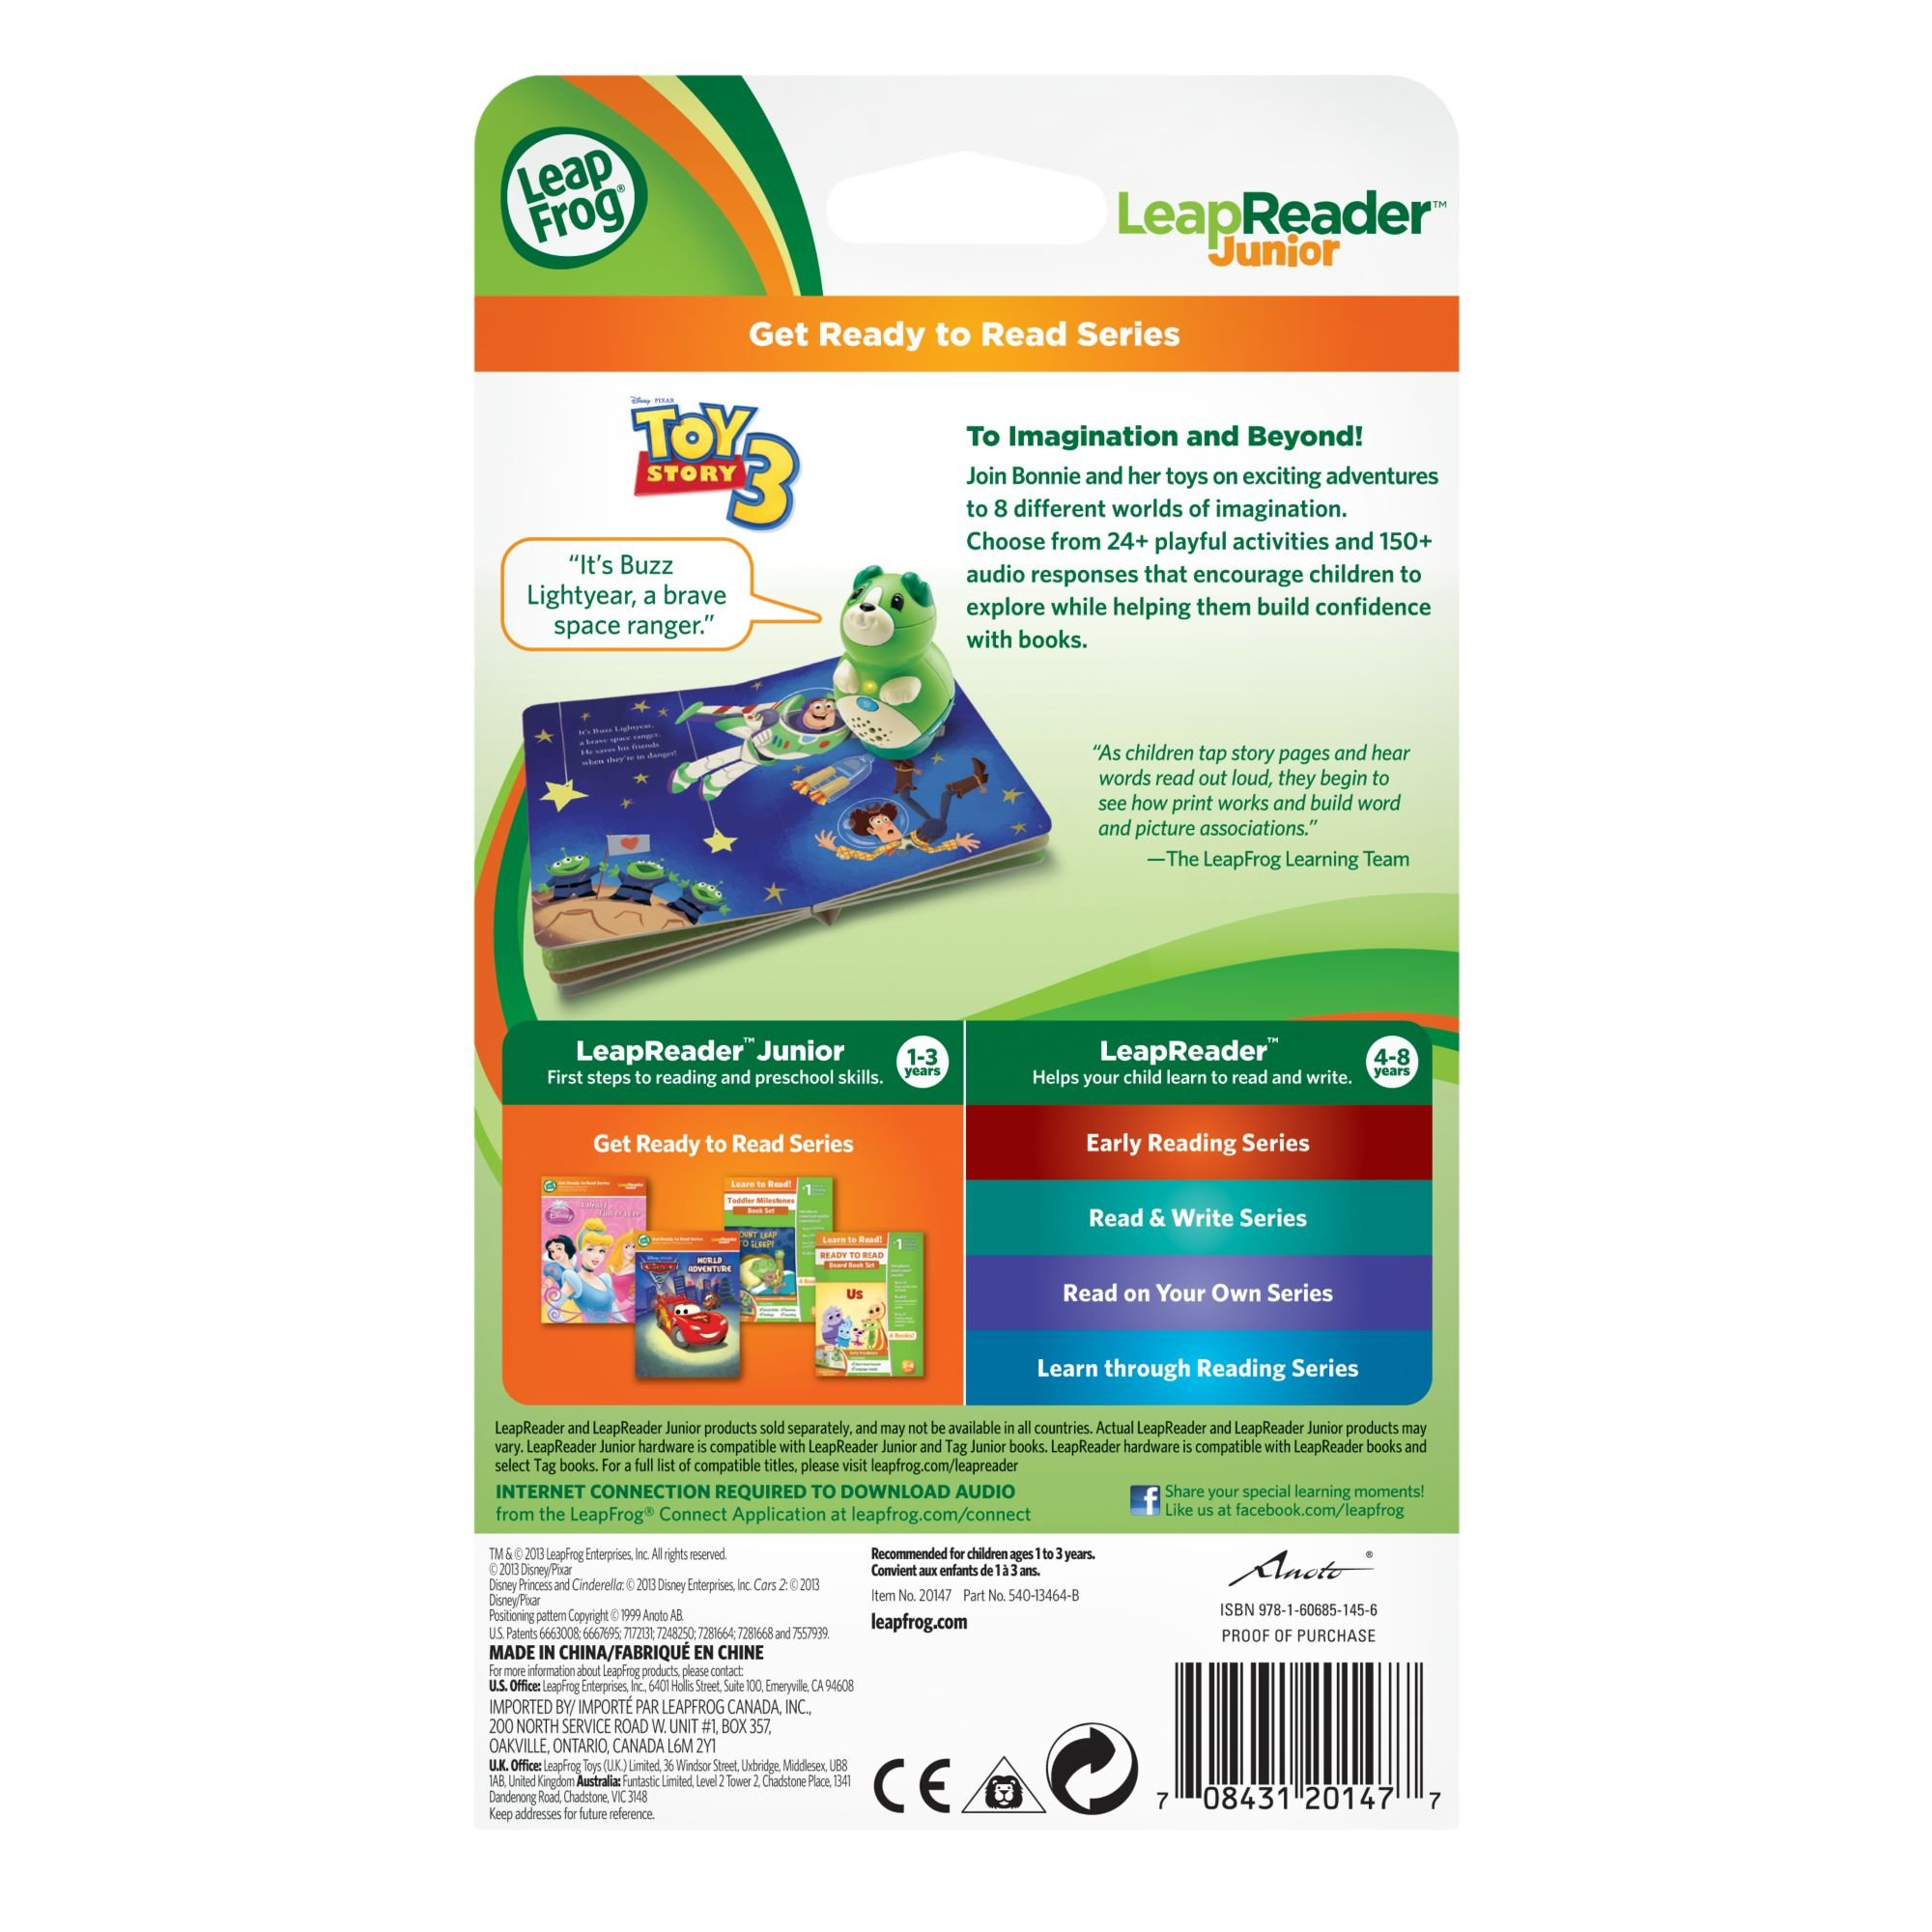 LeapFrog LeapReader Junior Book: DisneyPixar Toy Story 3: To Imagination and Beyond (works with Tag Junior) by LeapFrog (Image #5)